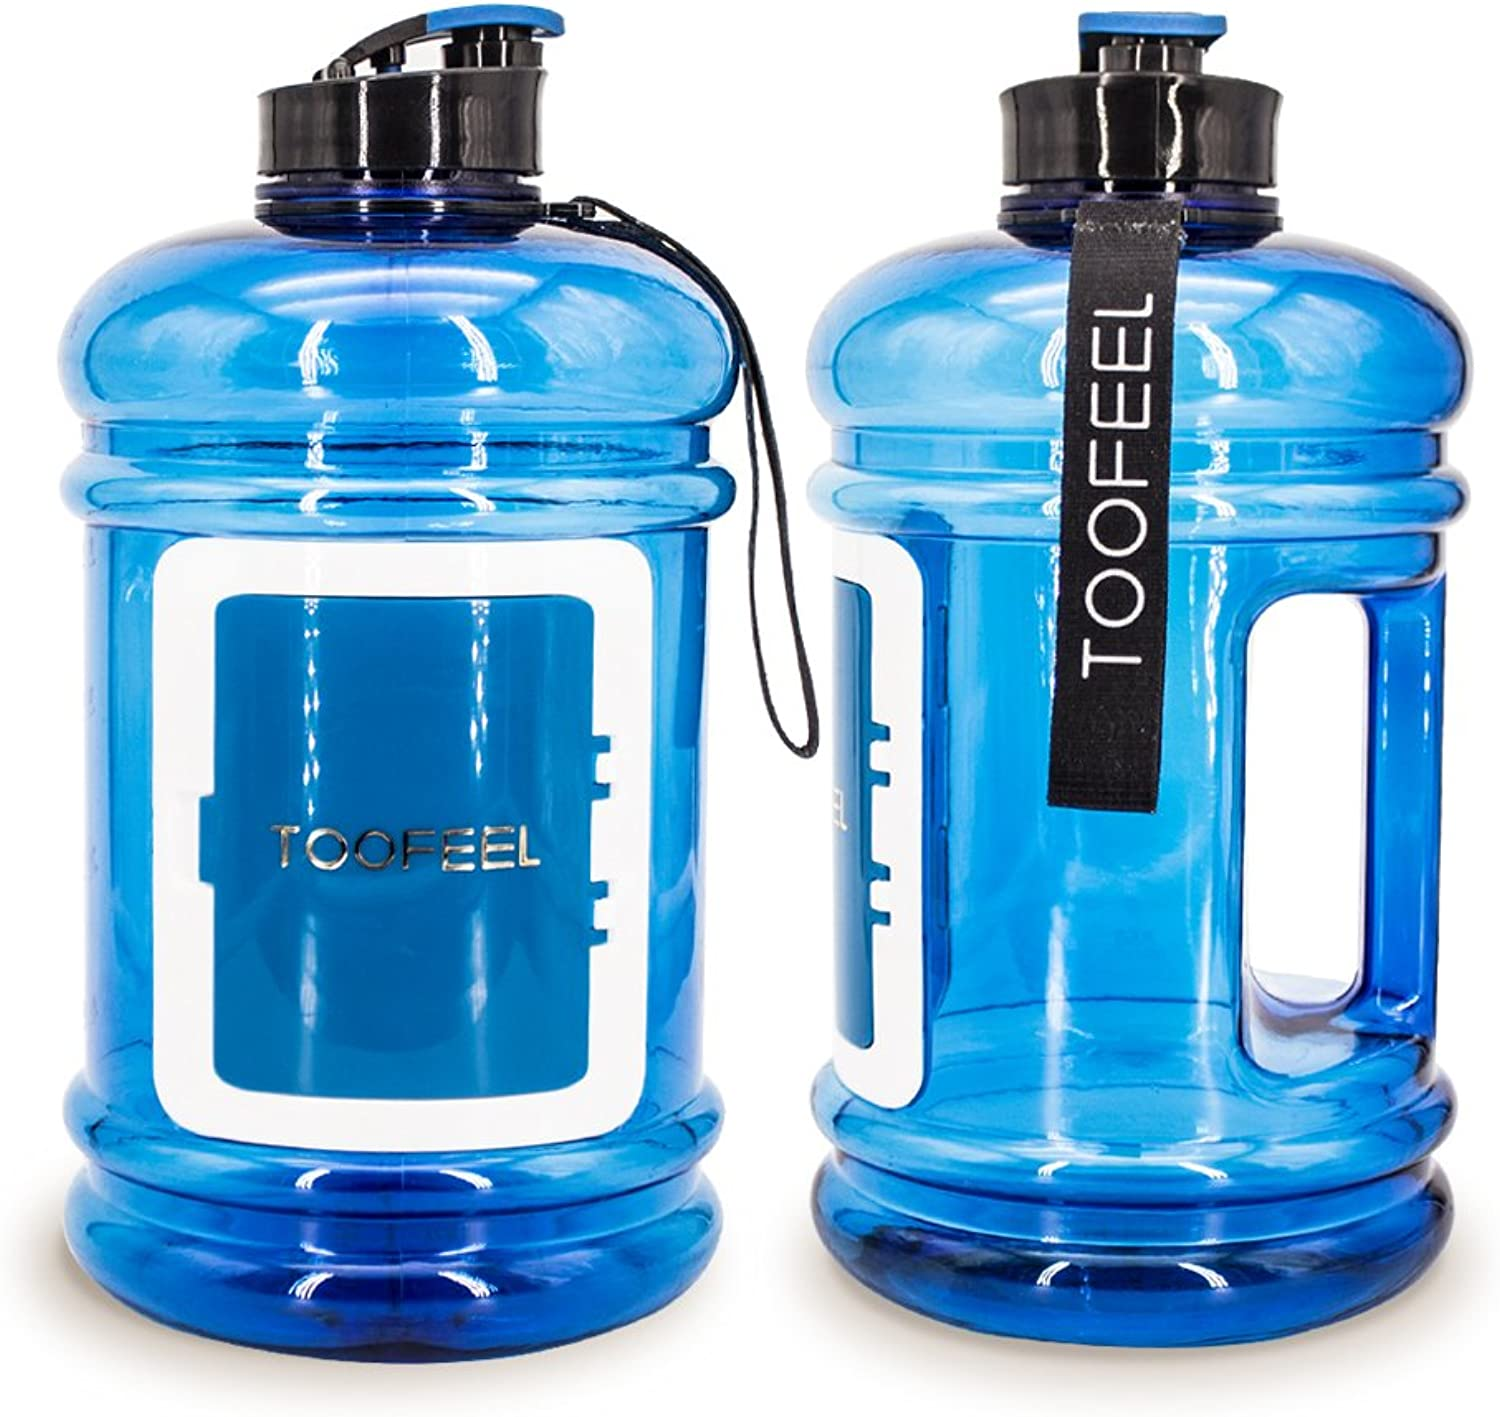 TOOFEEL Sports Water Jug 2.2L Big Water Bottle BPA Free 75OZ Hot Cold Tritan Large Drinking Jug Canteens with Money Card Key Drawer Shaker Bottle for Camping & Hiking Training